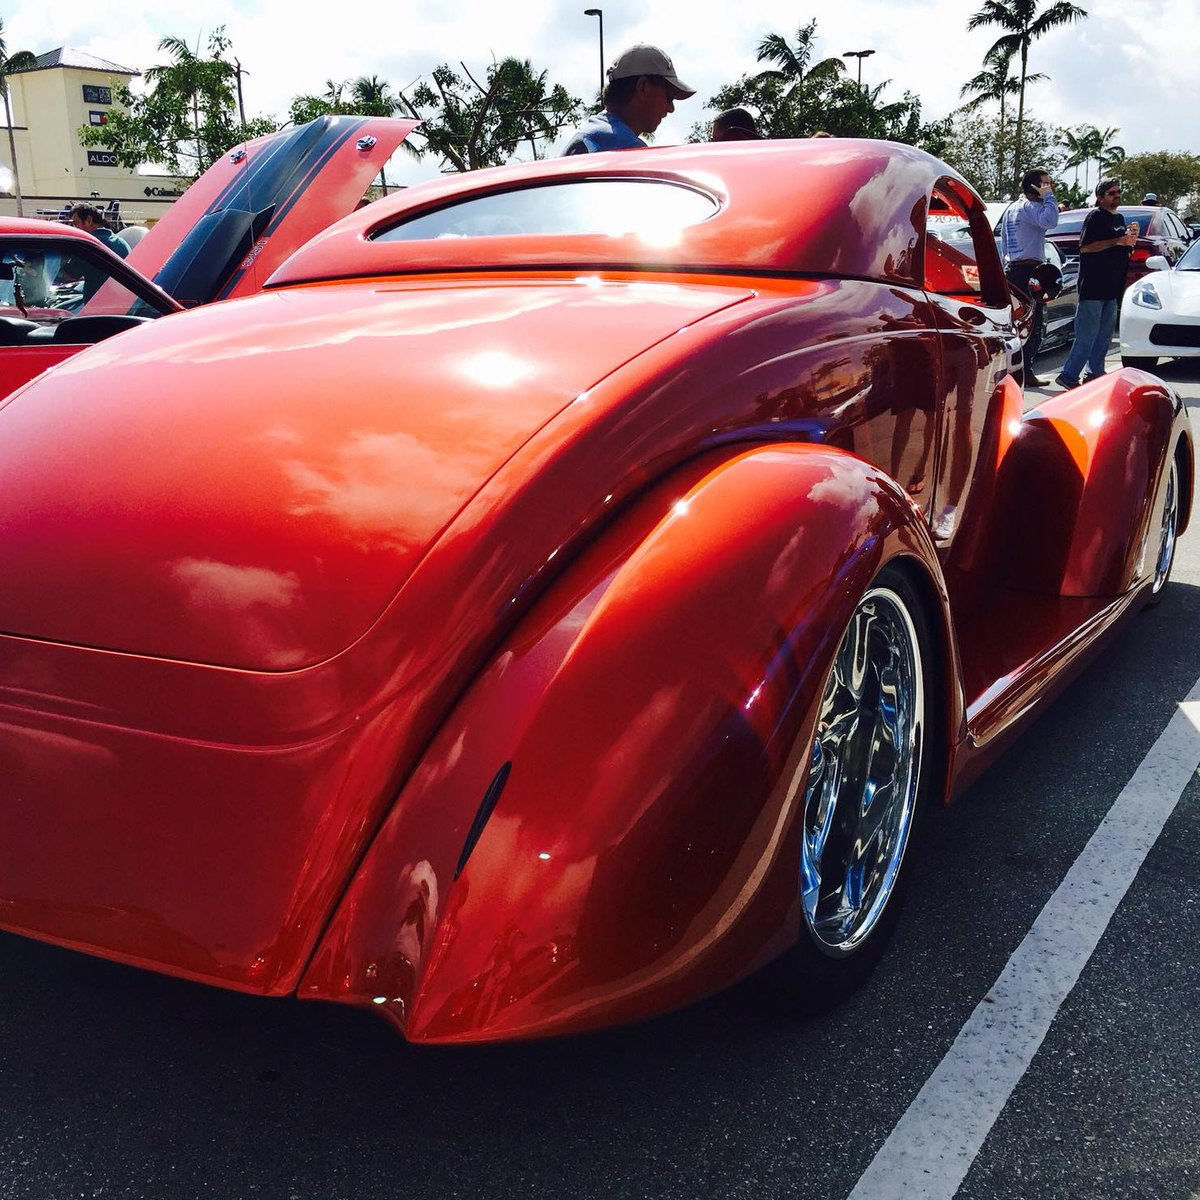 Palm Beach Outlets On Twitter We Like Big Cars And We Can Not Lie - Car show palm beach outlets